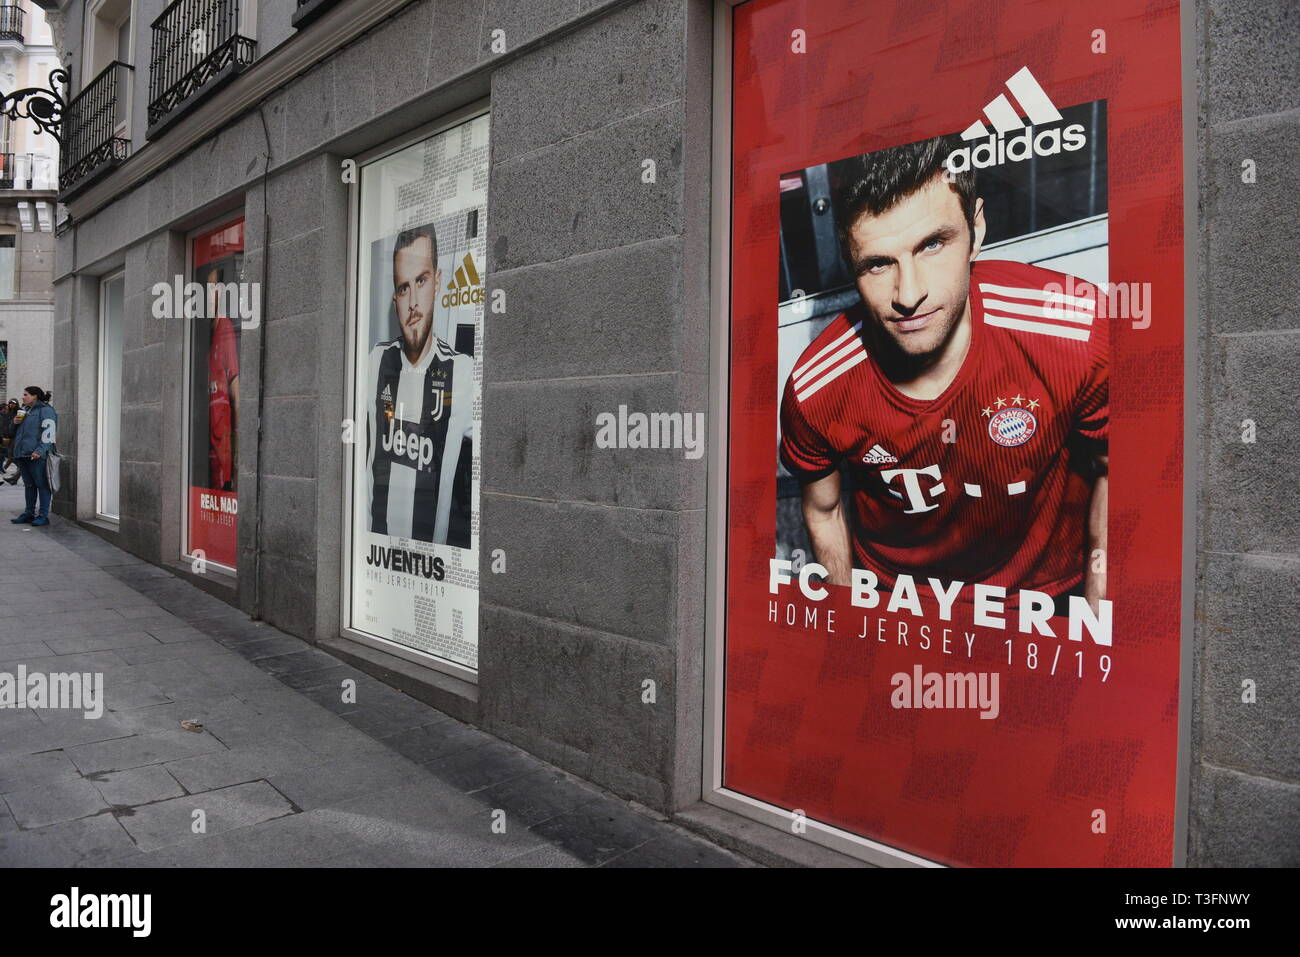 Madrid Madrid Spain 9th Apr 2019 An Adidas Advertisement Seen On A Adidas Store In Madrid Credit John Milner Sopa Images Zuma Wire Alamy Live News Stock Photo Alamy